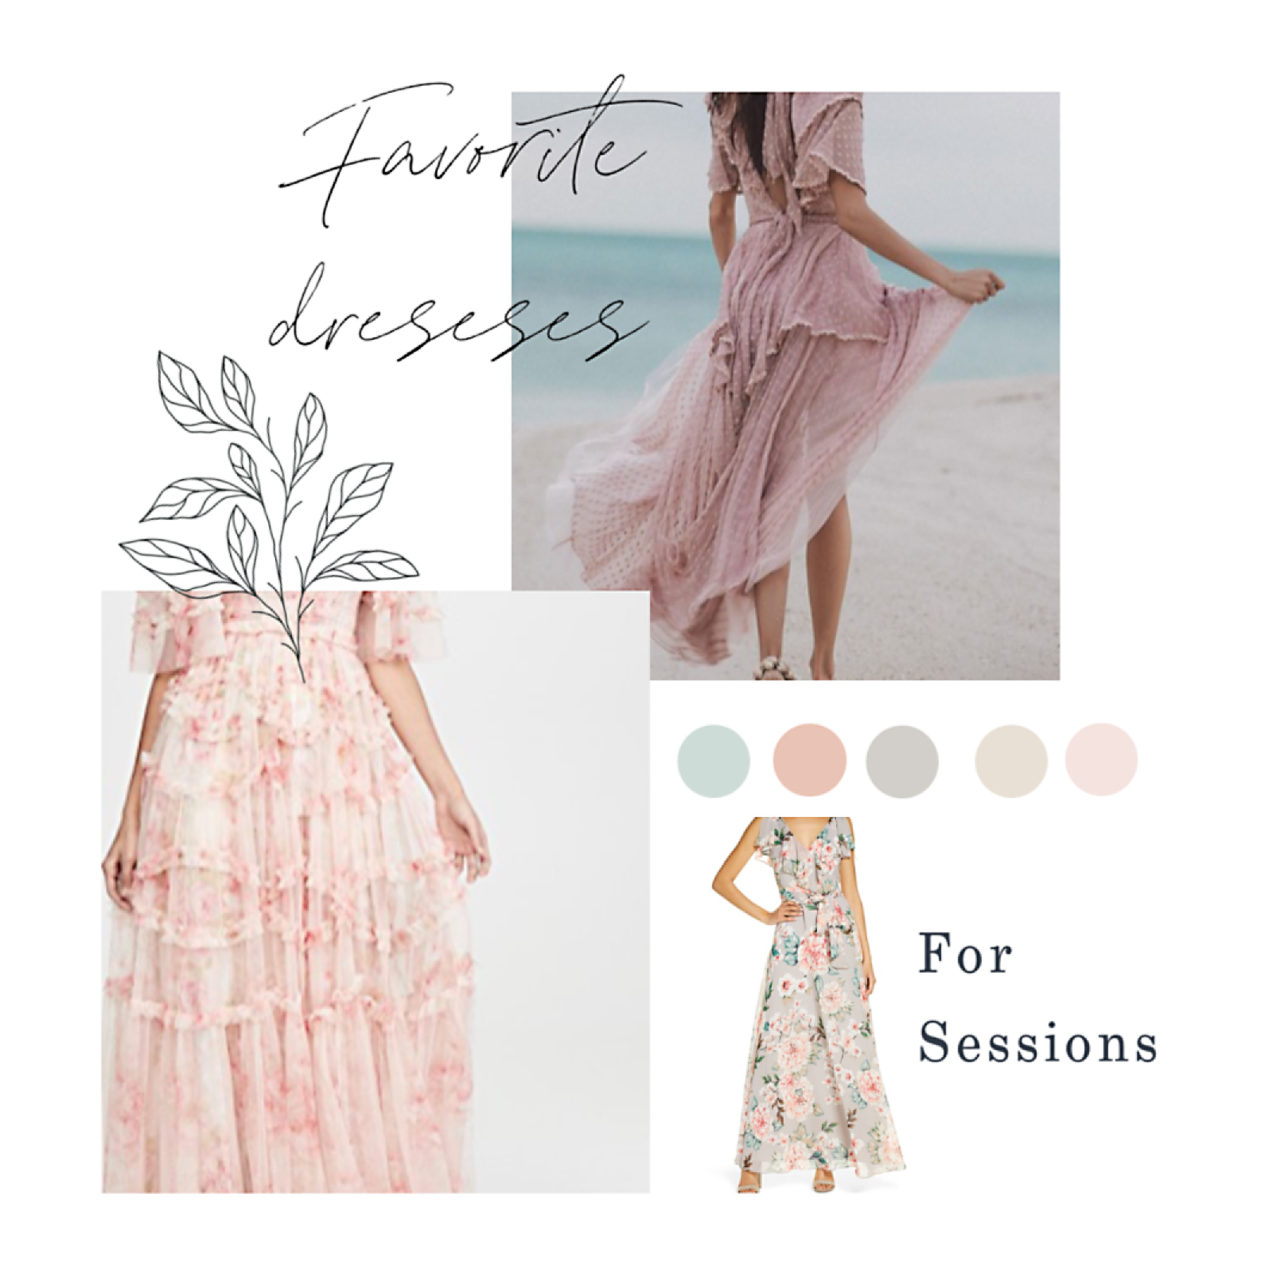 Spring and Summer dresses for photography sessions